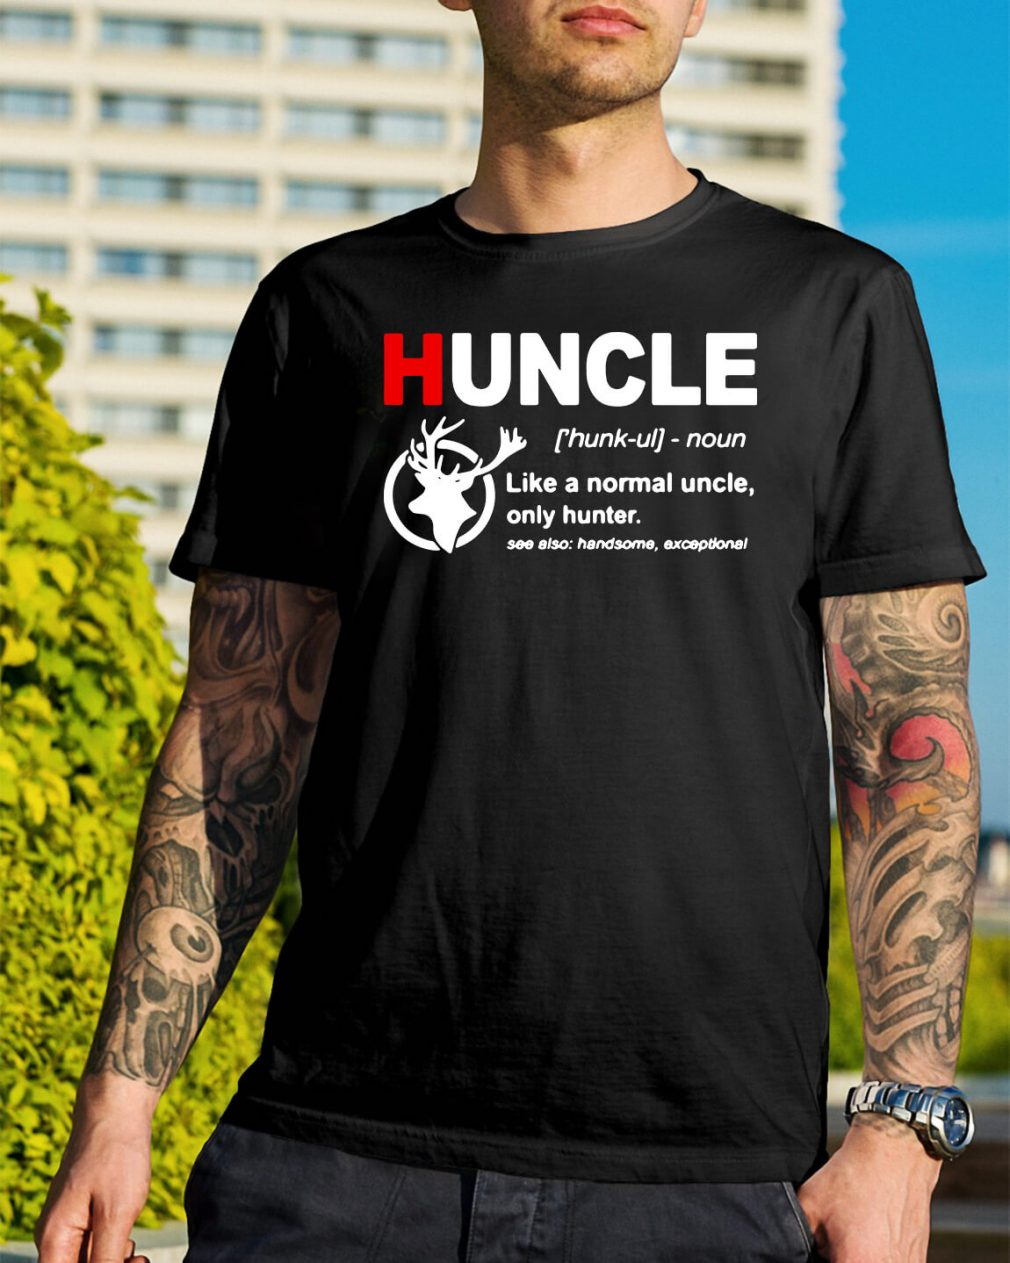 Huncle definition like a normal uncle only hunter shirt